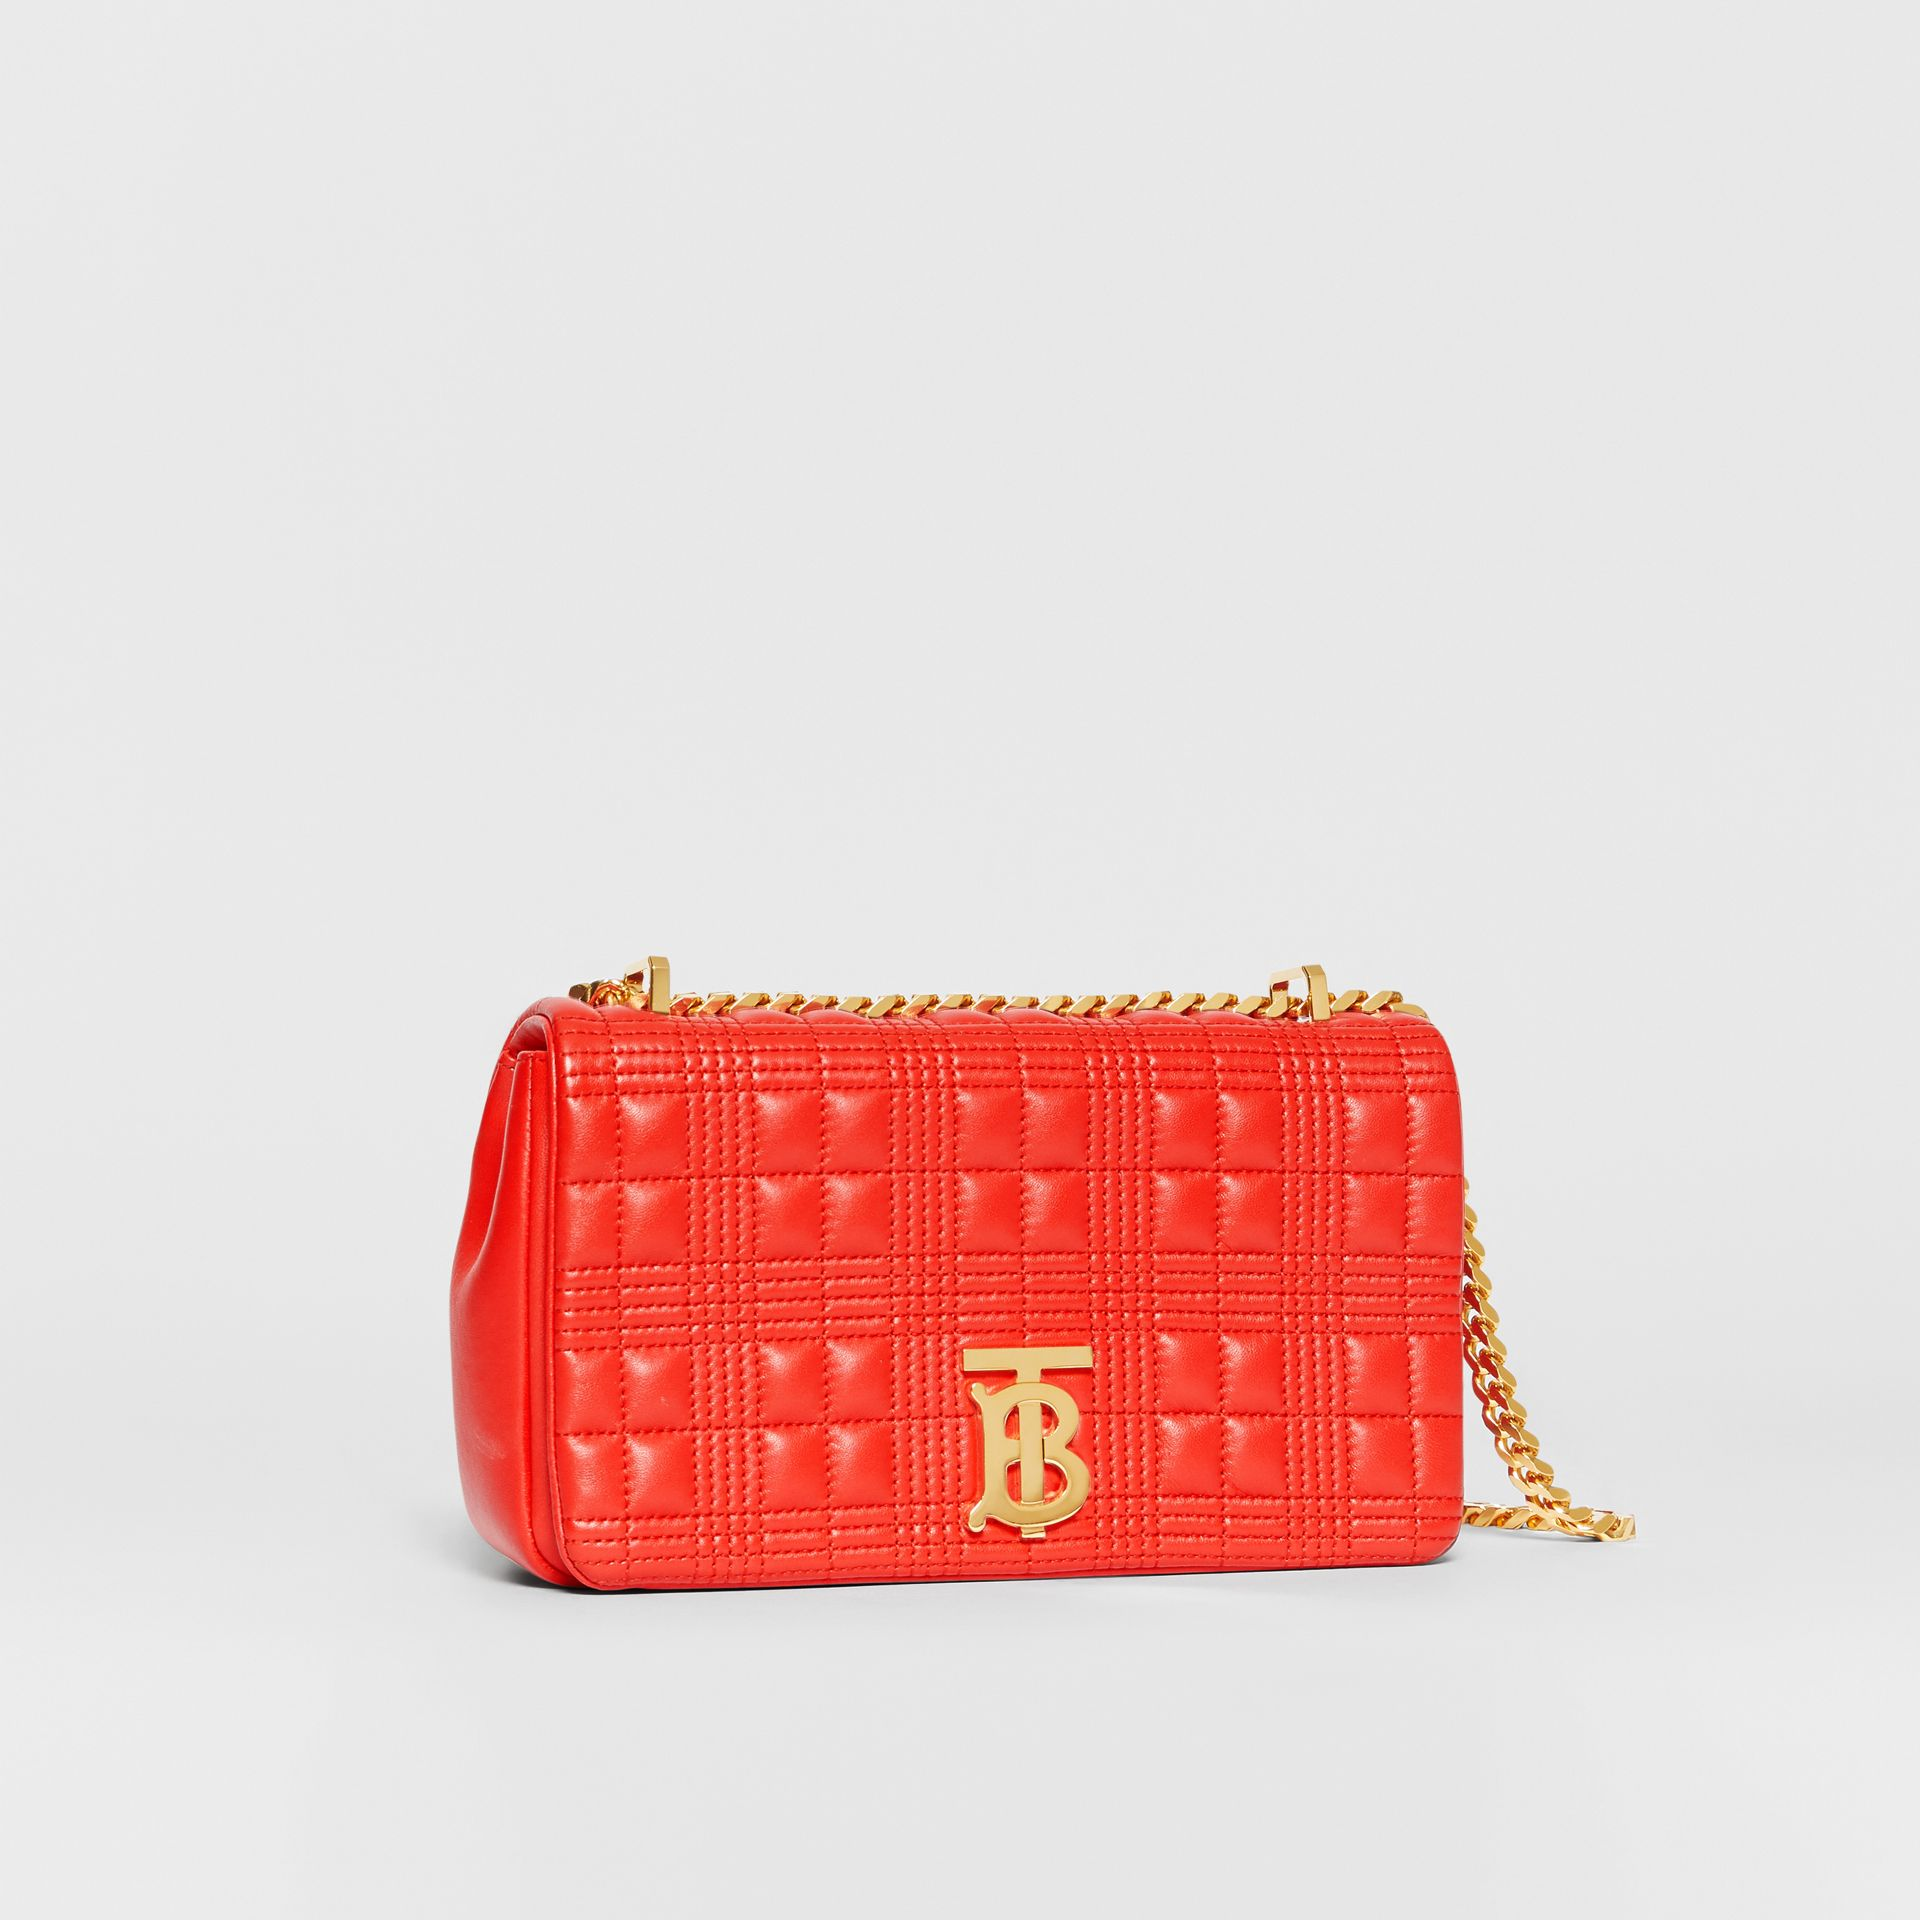 Small Quilted Lambskin Lola Bag in Bright Red - Women | Burberry United States - gallery image 6